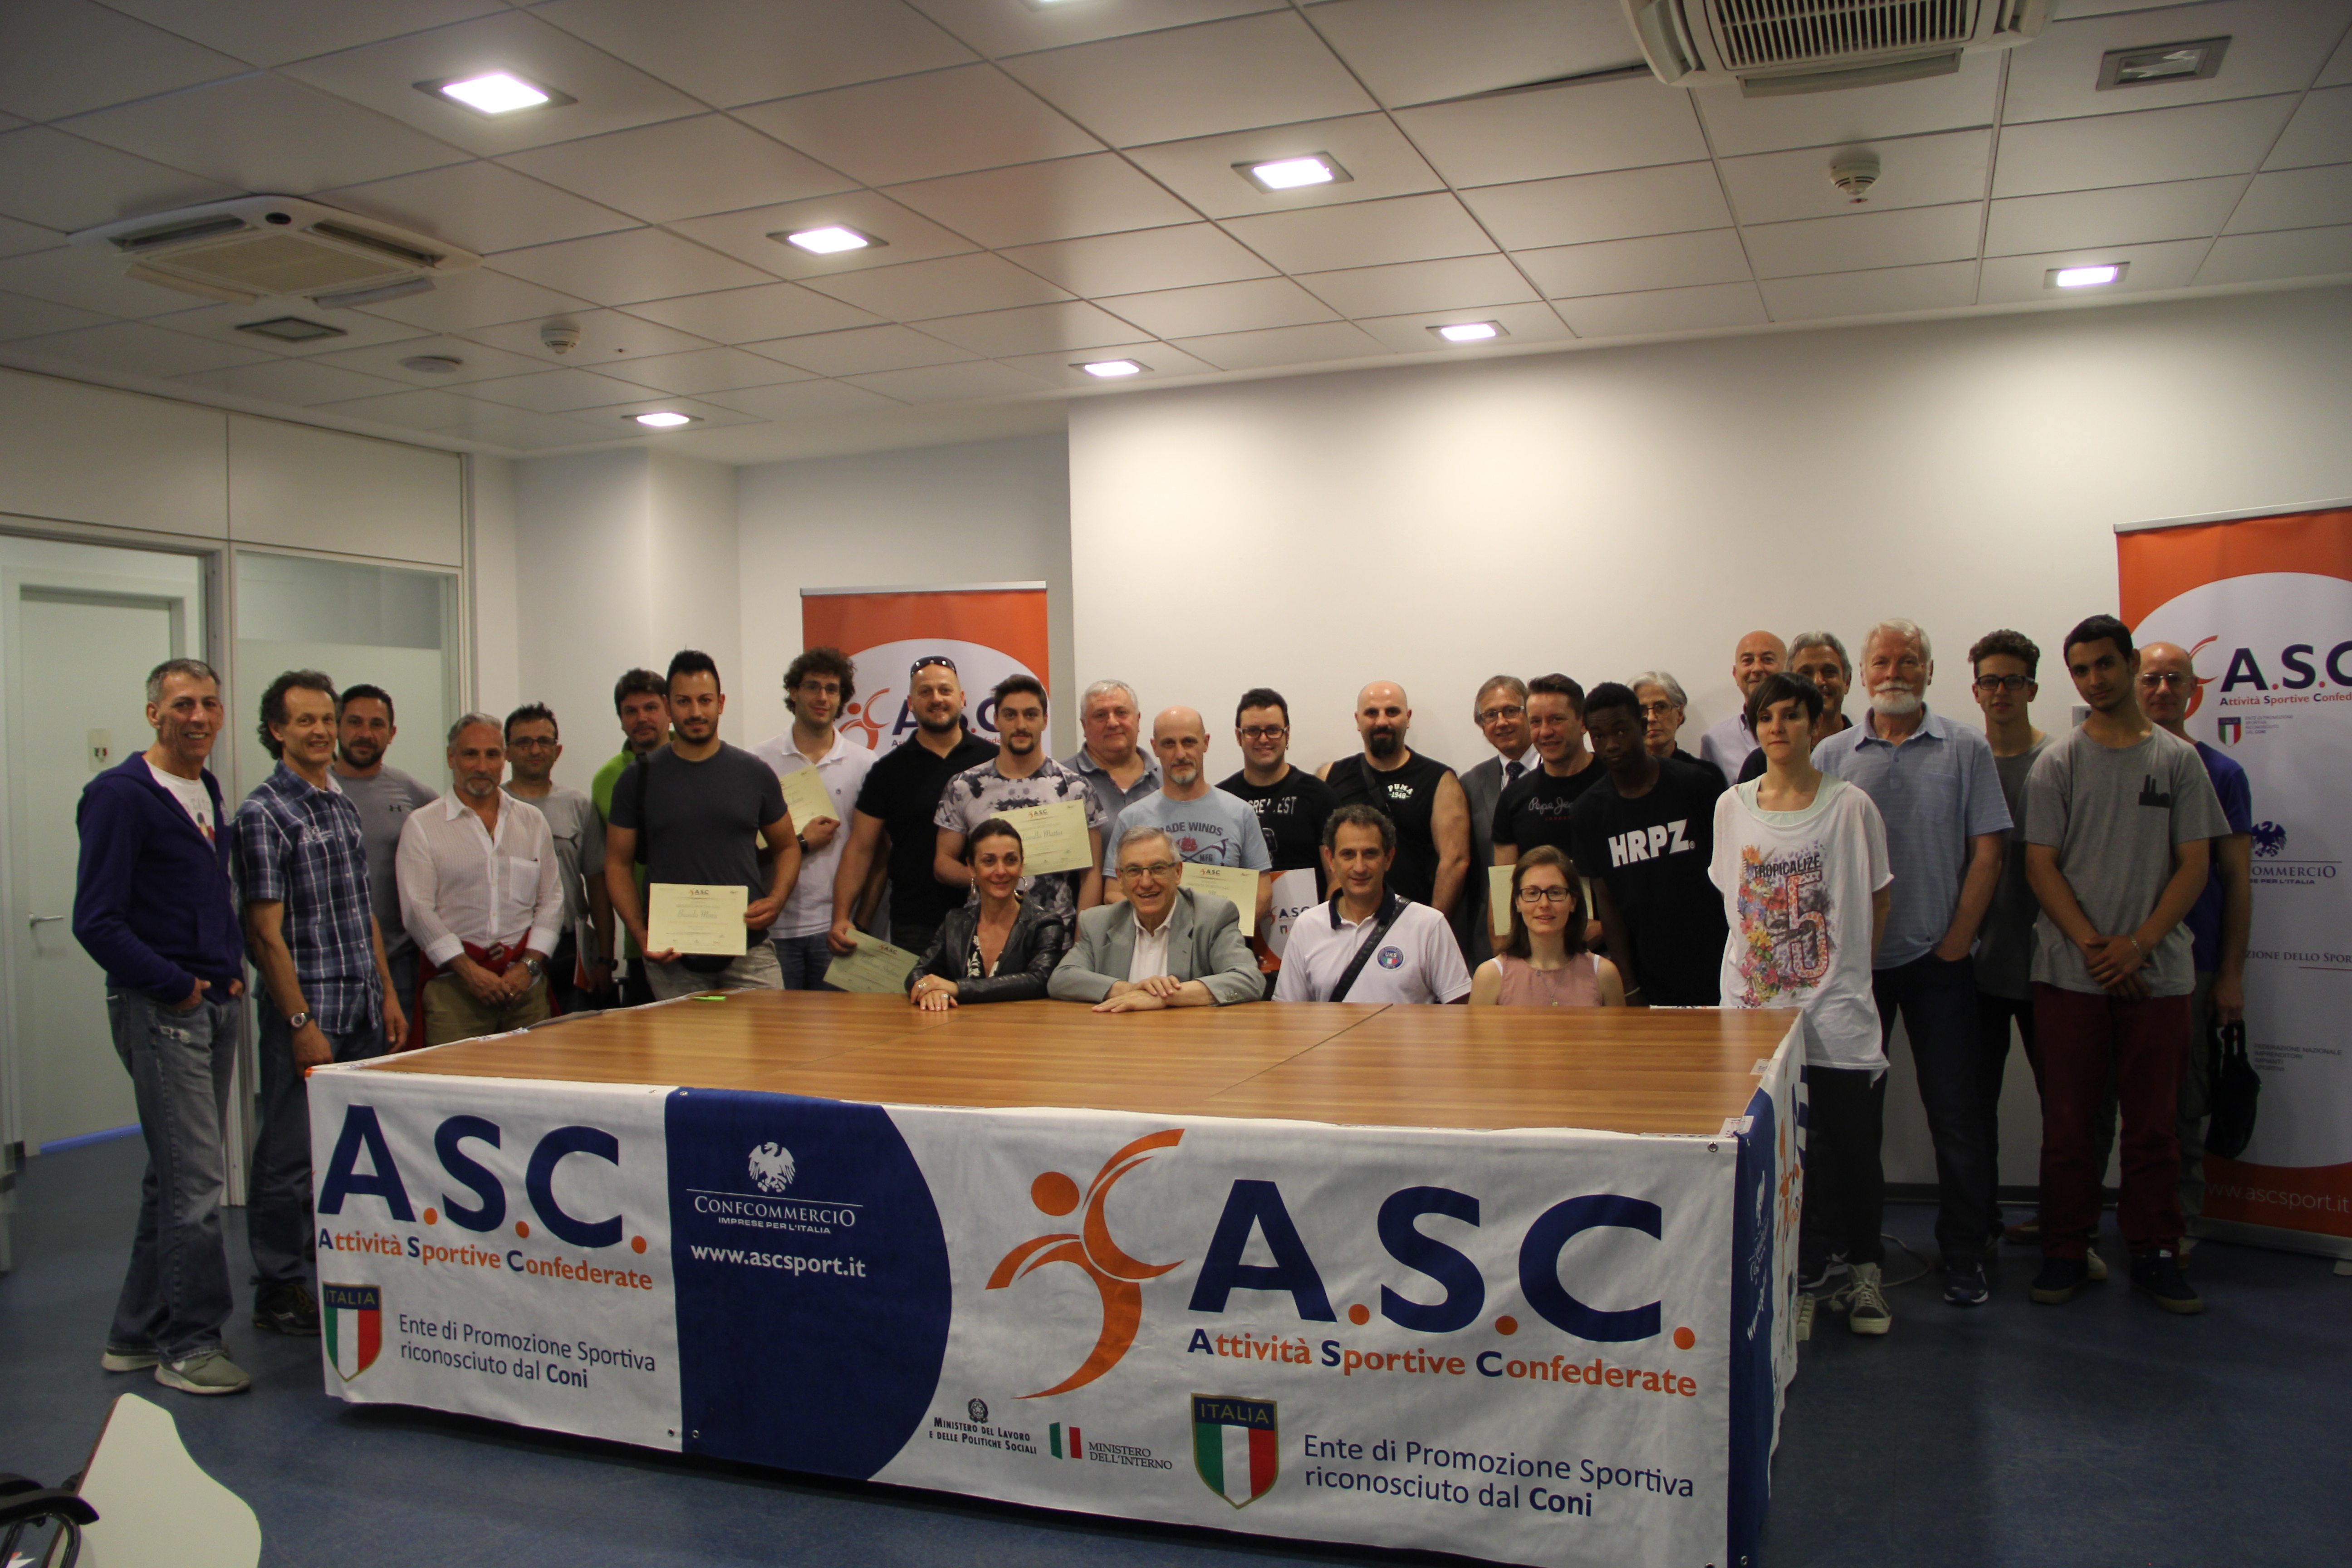 A S C  WEEKEND 27-28 MAGGIO 2017